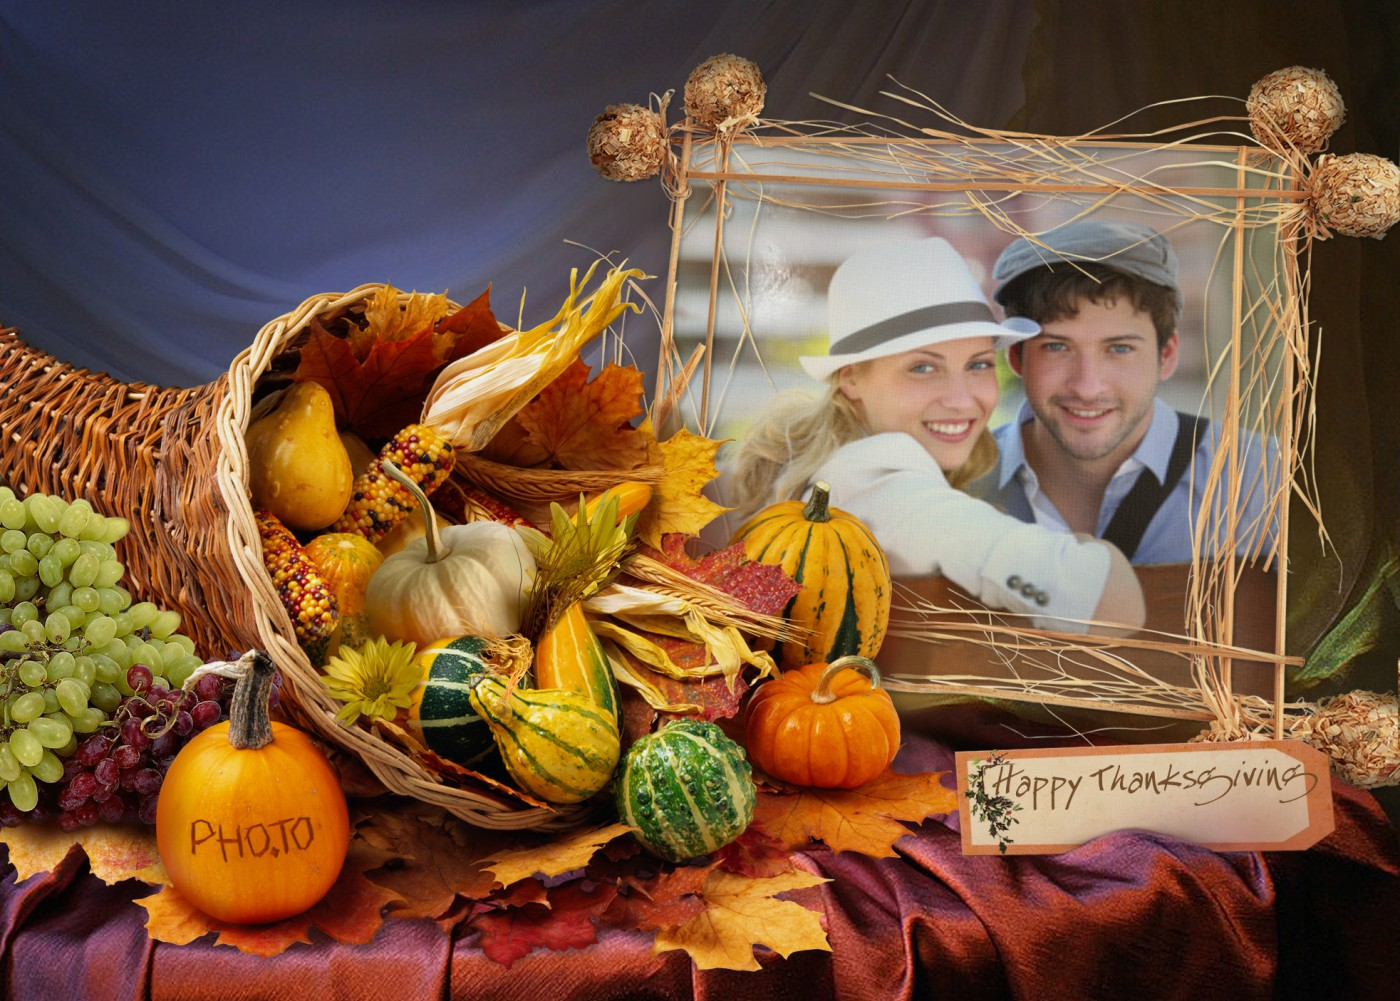 Thanksgiving greeting card with holiday table decorations for family.